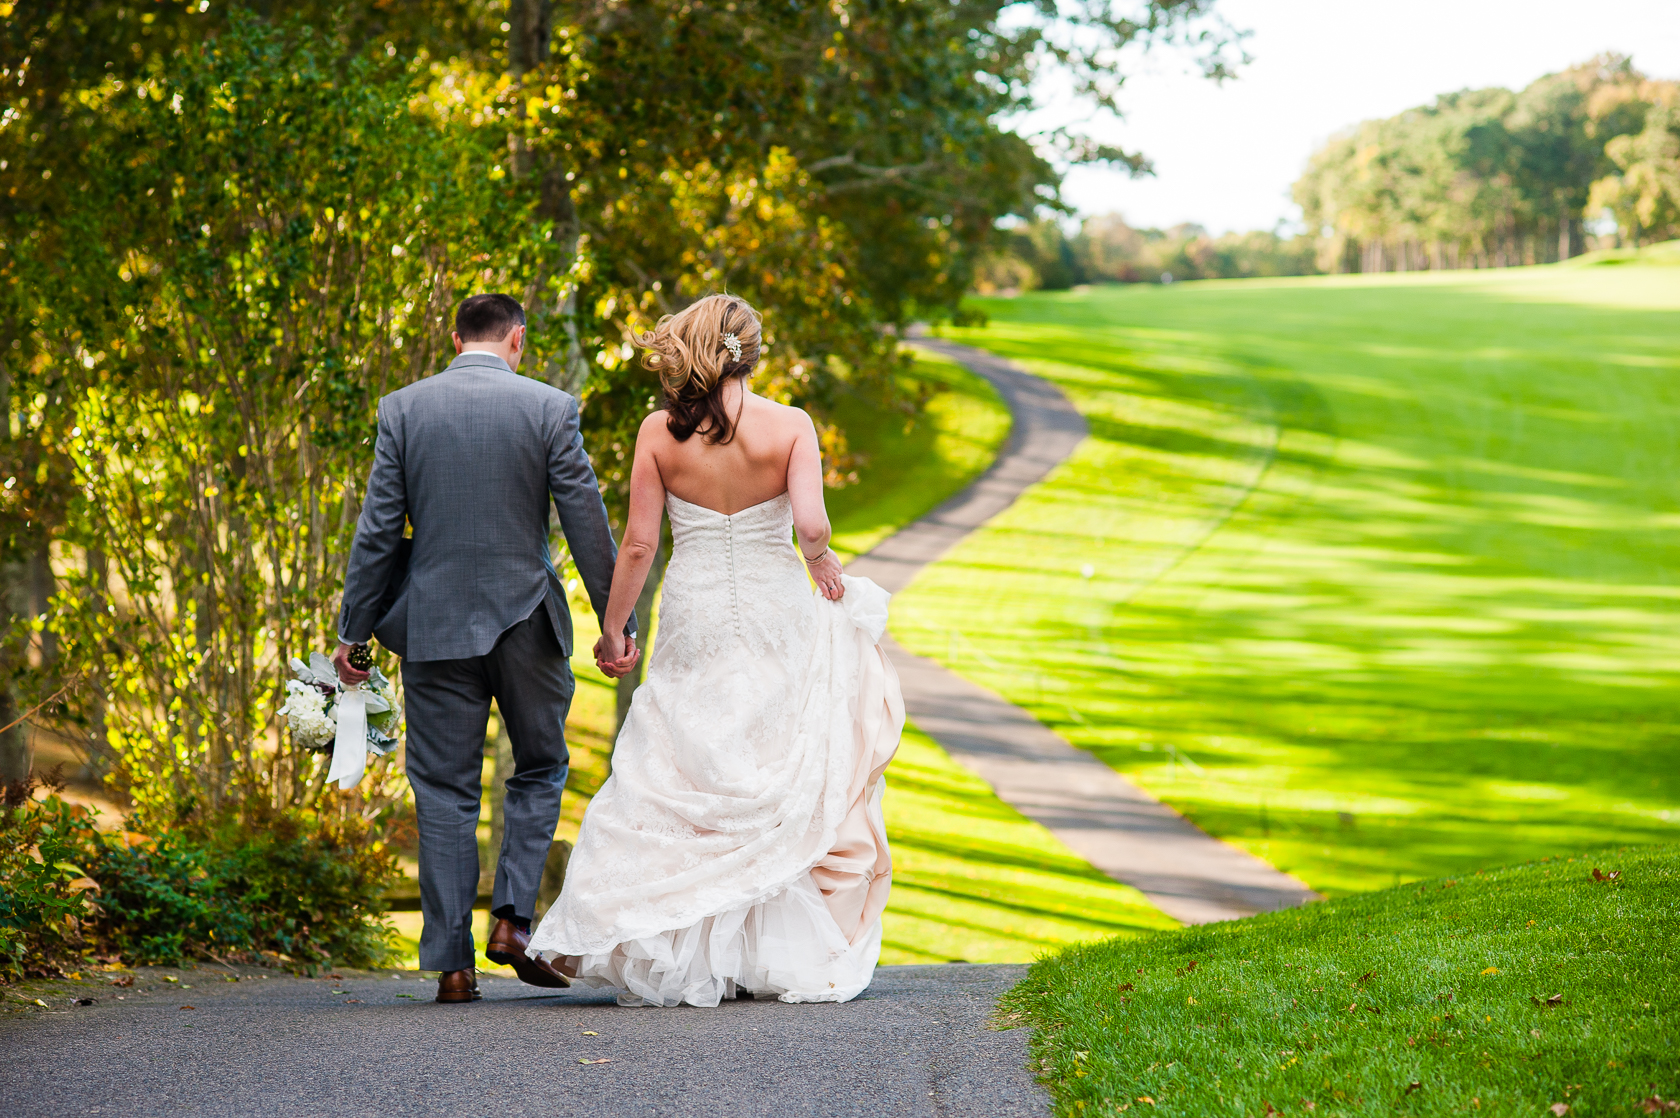 bride and groom walk on golf course path